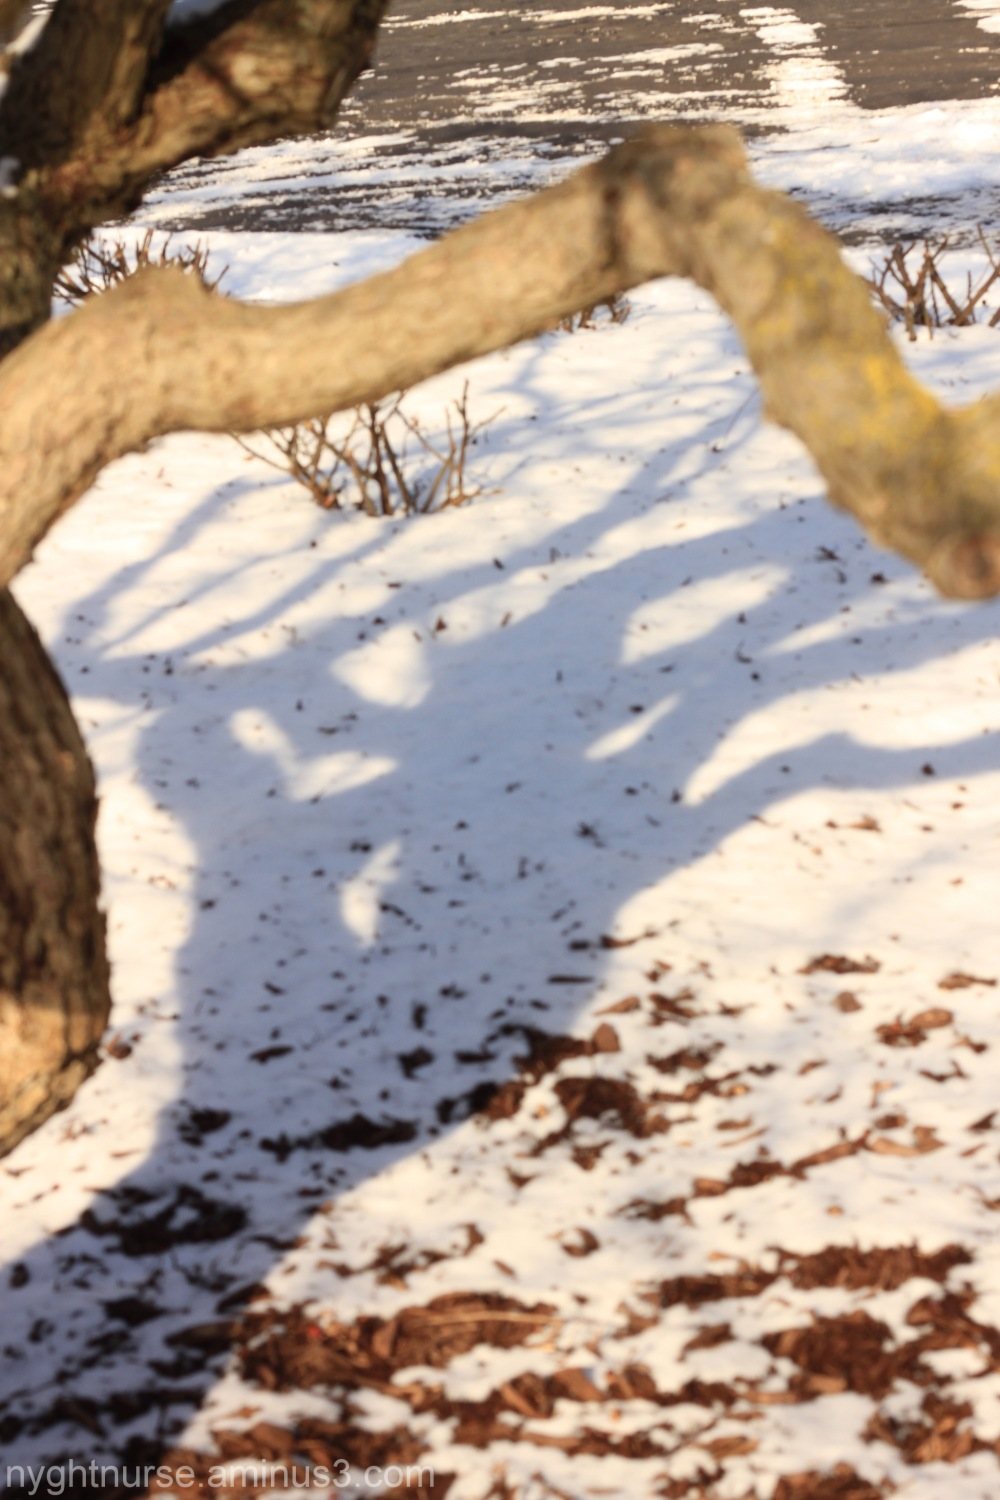 A shadow of a tree